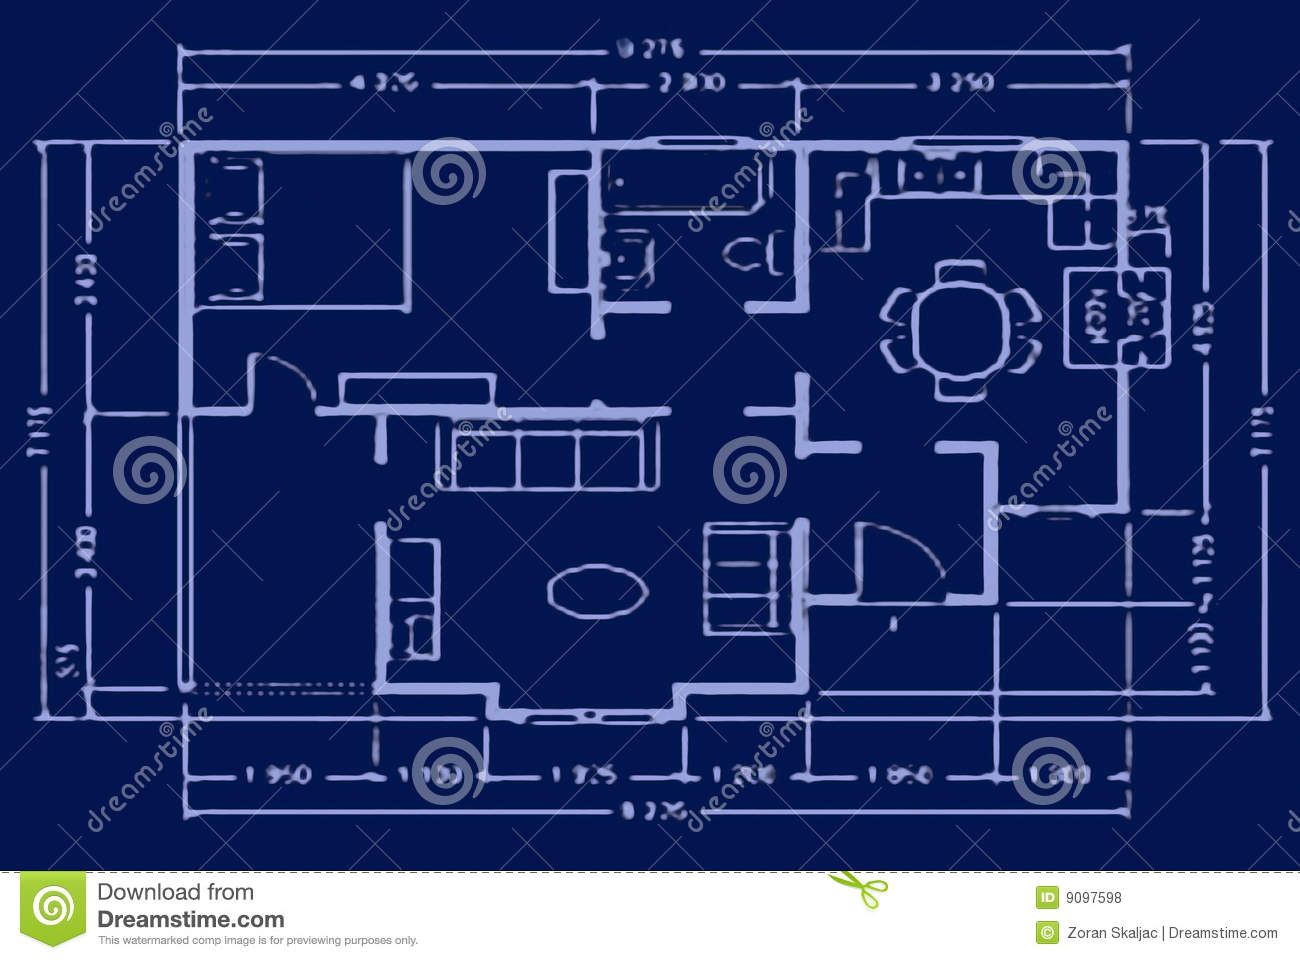 Blueprint house plan royalty free stock photos image blueprints blueprint house plan royalty free stock photos image blueprints model sheet blue print pinterest malvernweather Image collections